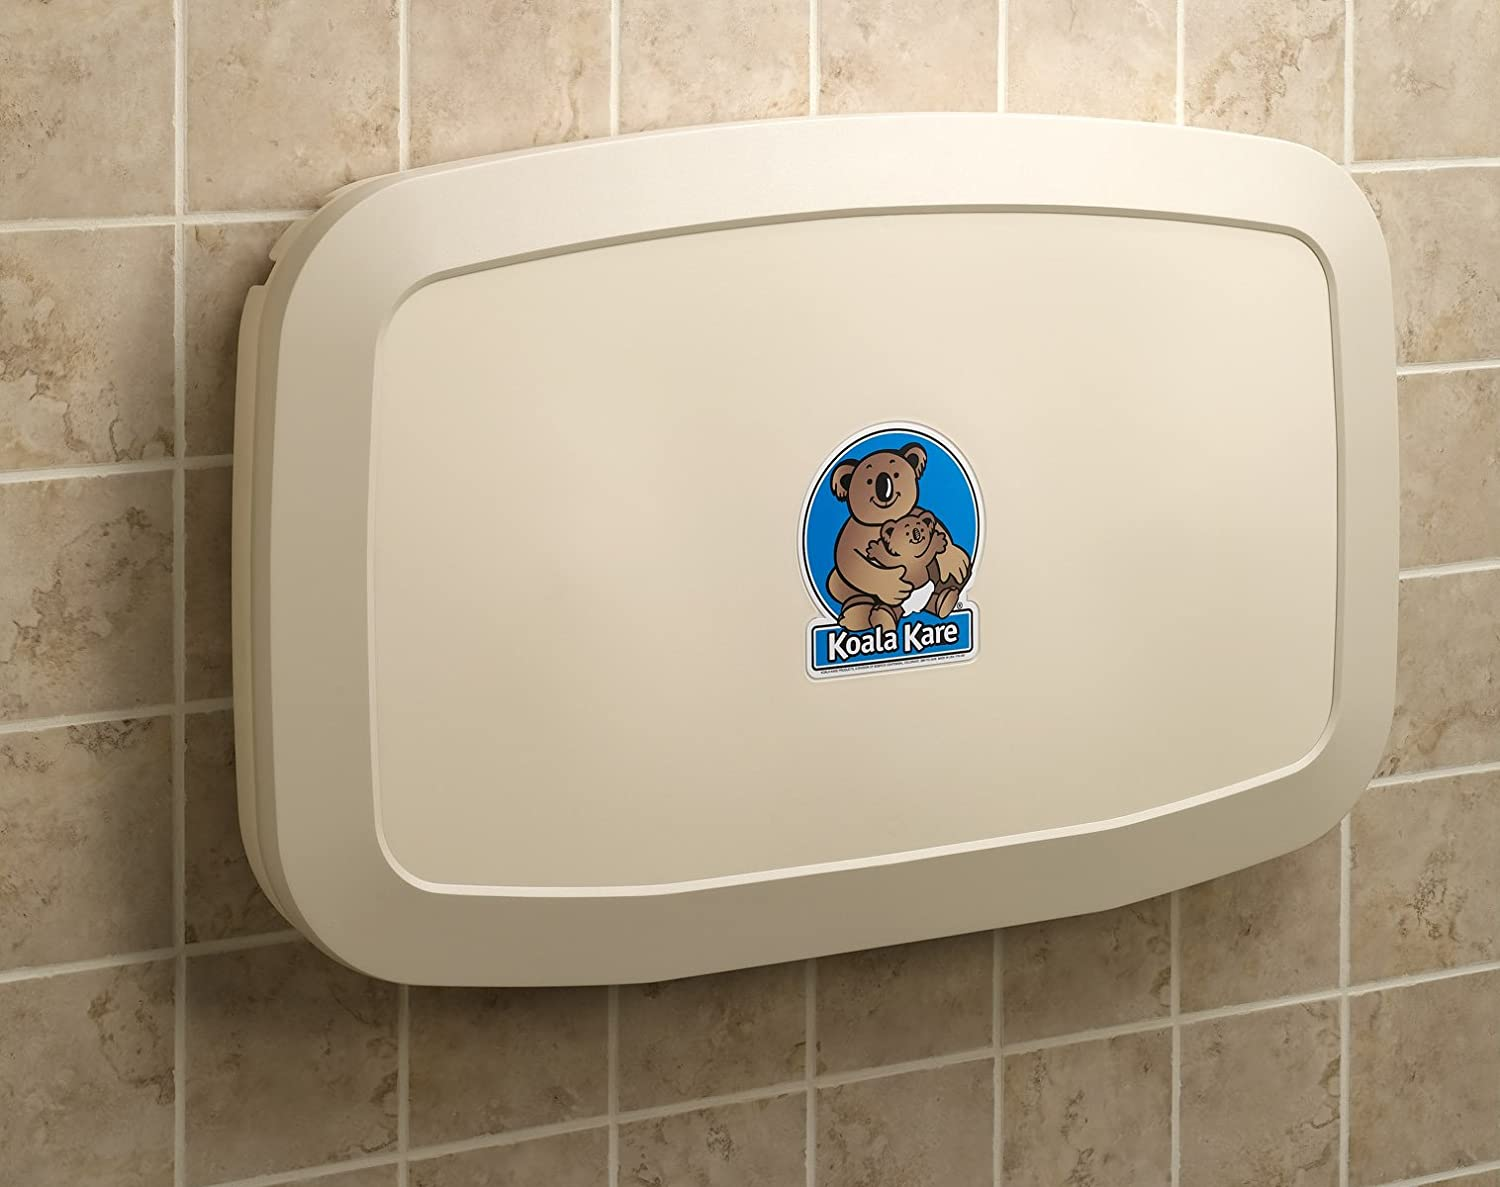 Koala Kare KB Horizontal Wall Mounted Baby Changing Station - Koala care changing table